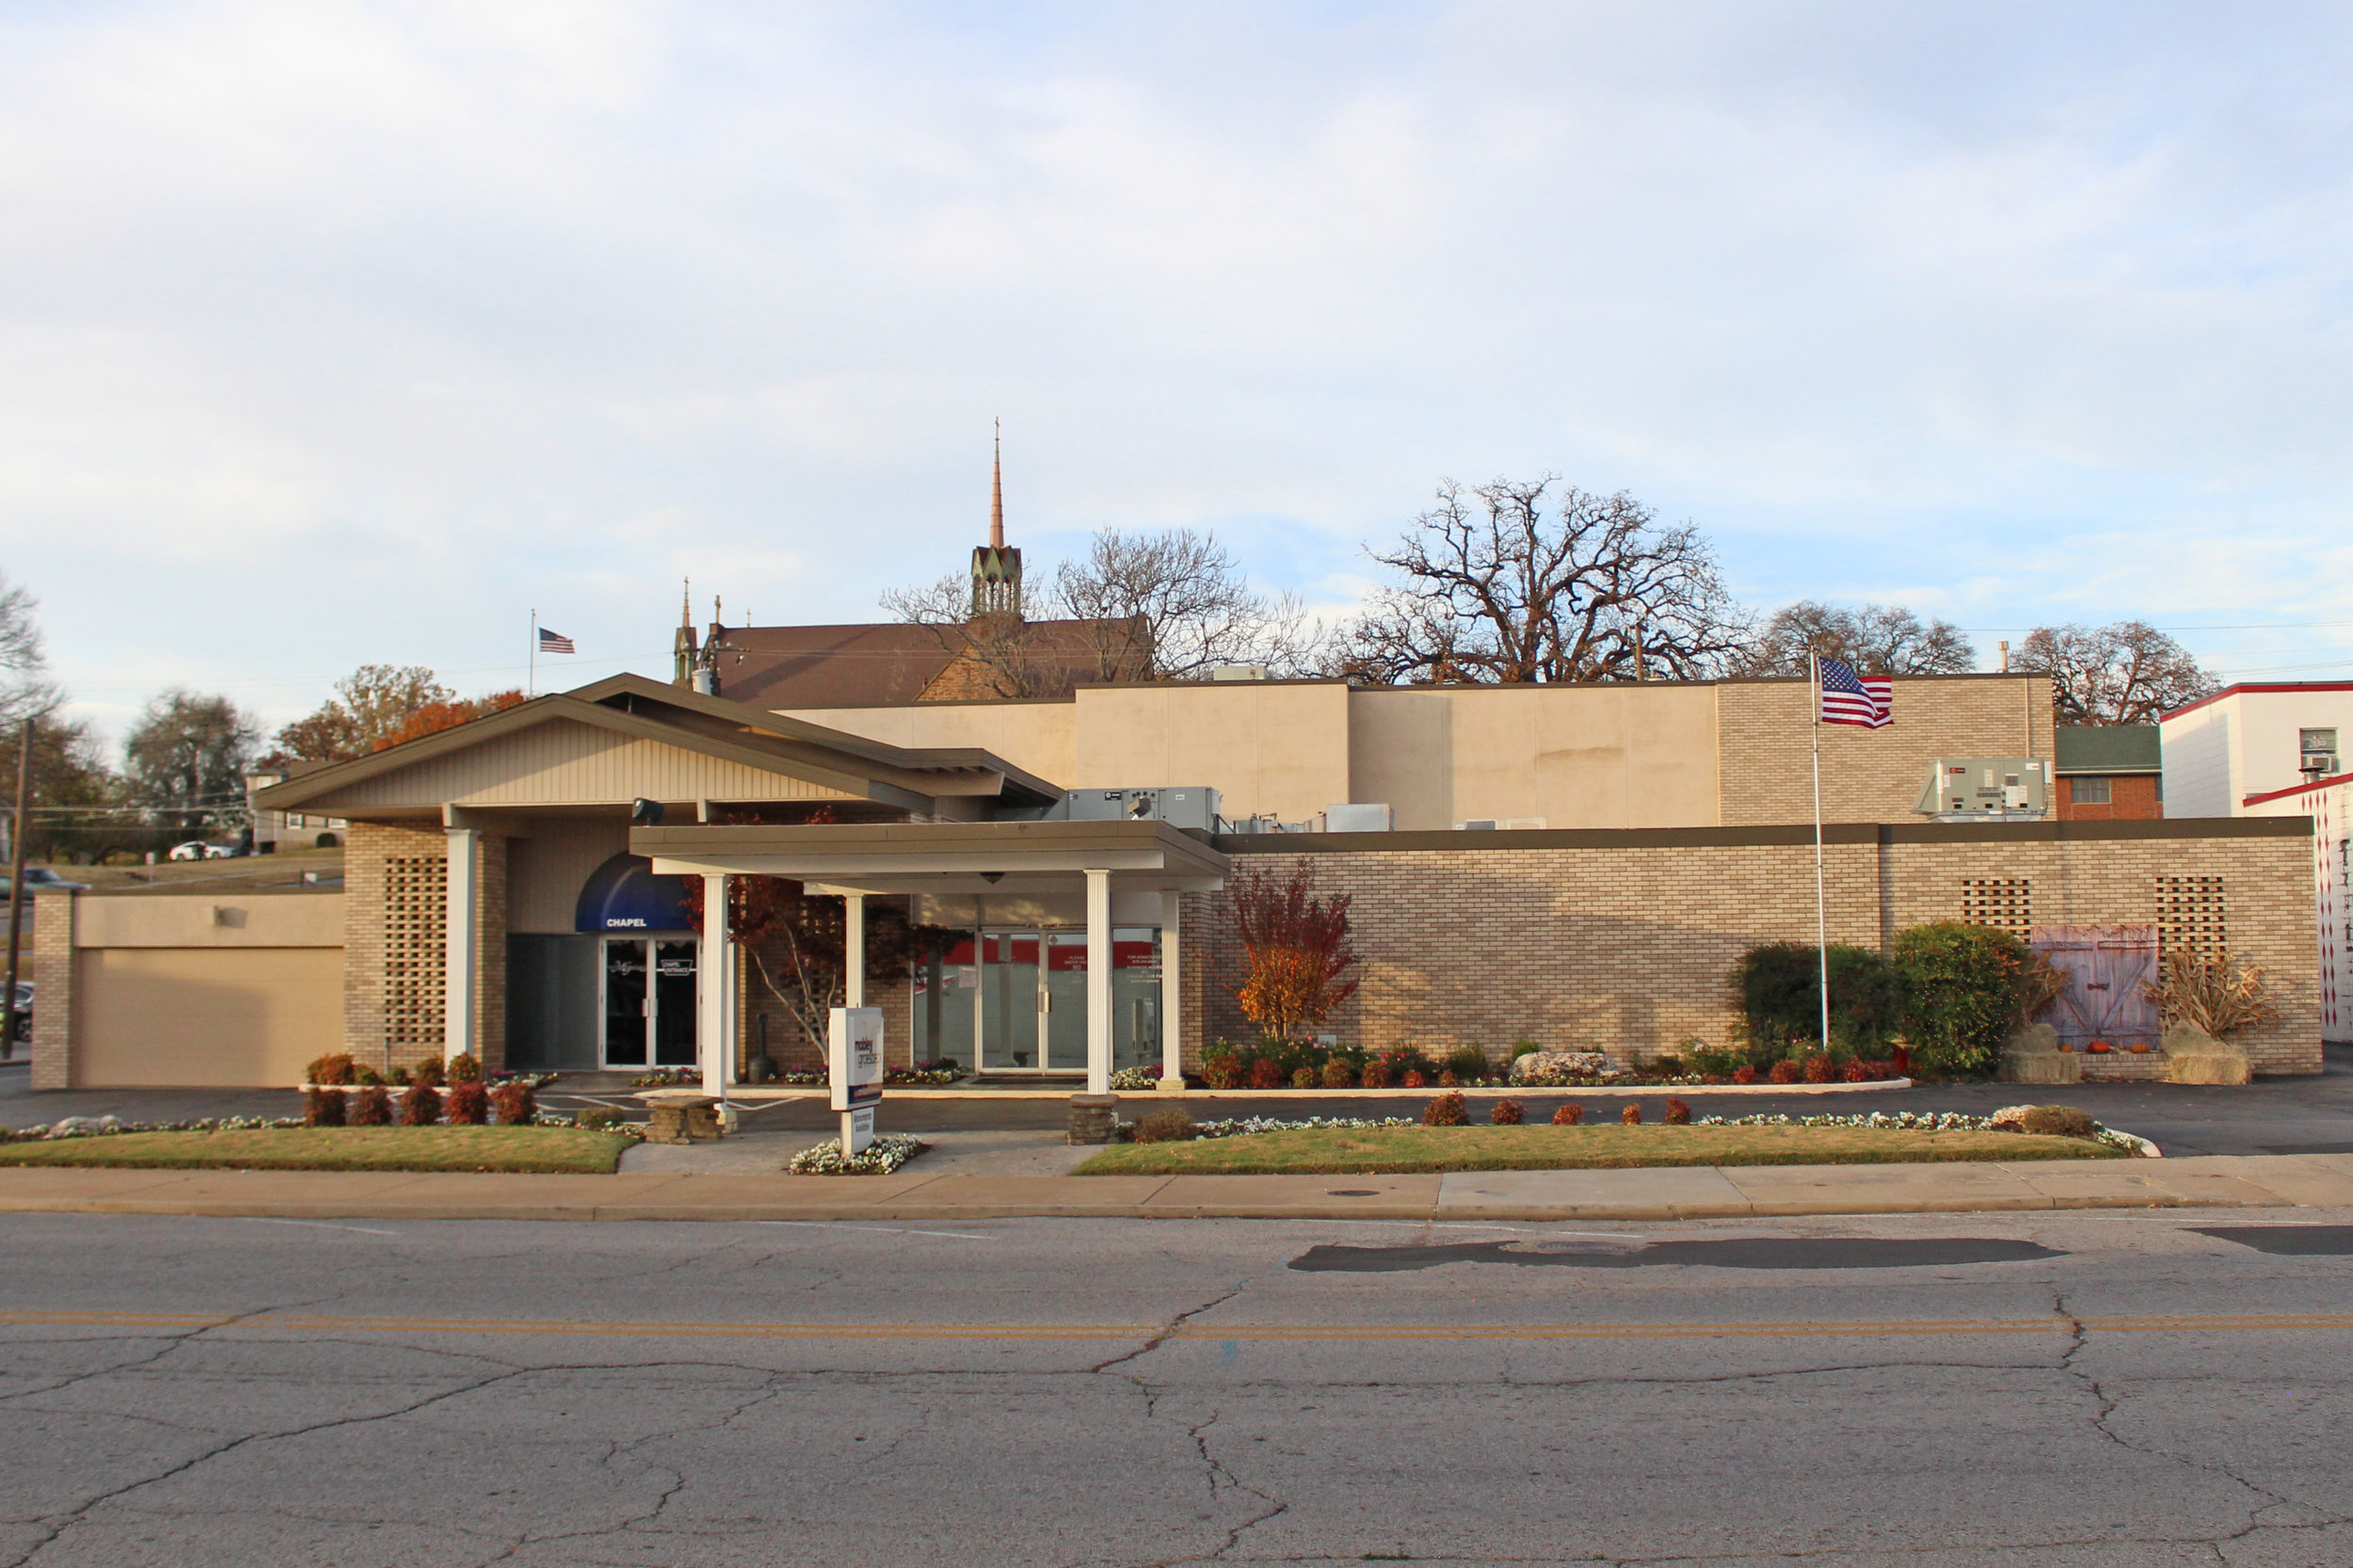 mobley-groesbeck funeral service, inc. - downtown 211 east broadway street